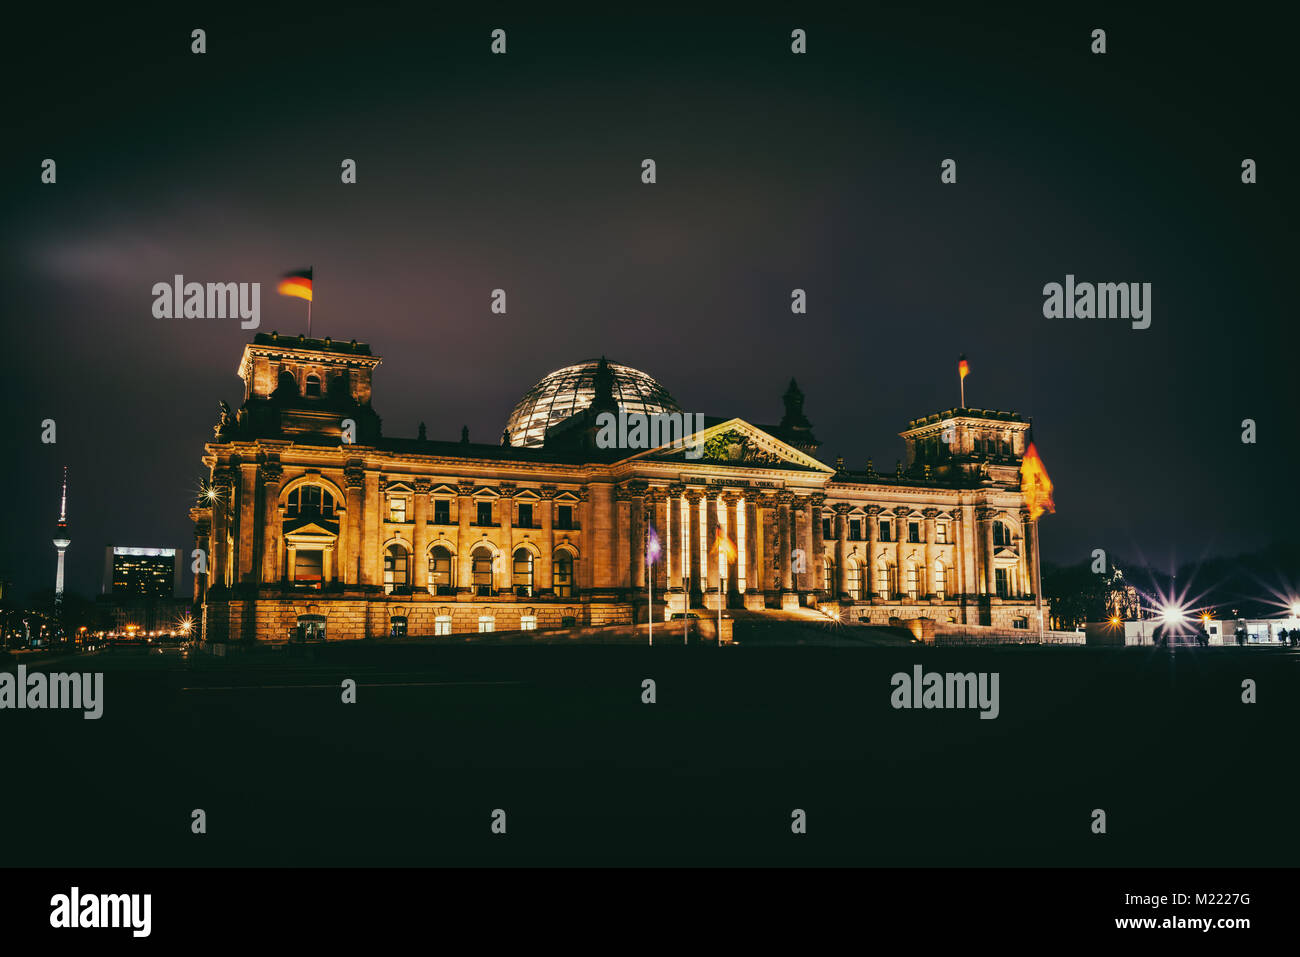 Illuminated Reichstag building at night in Berlin, Germany - Stock Image